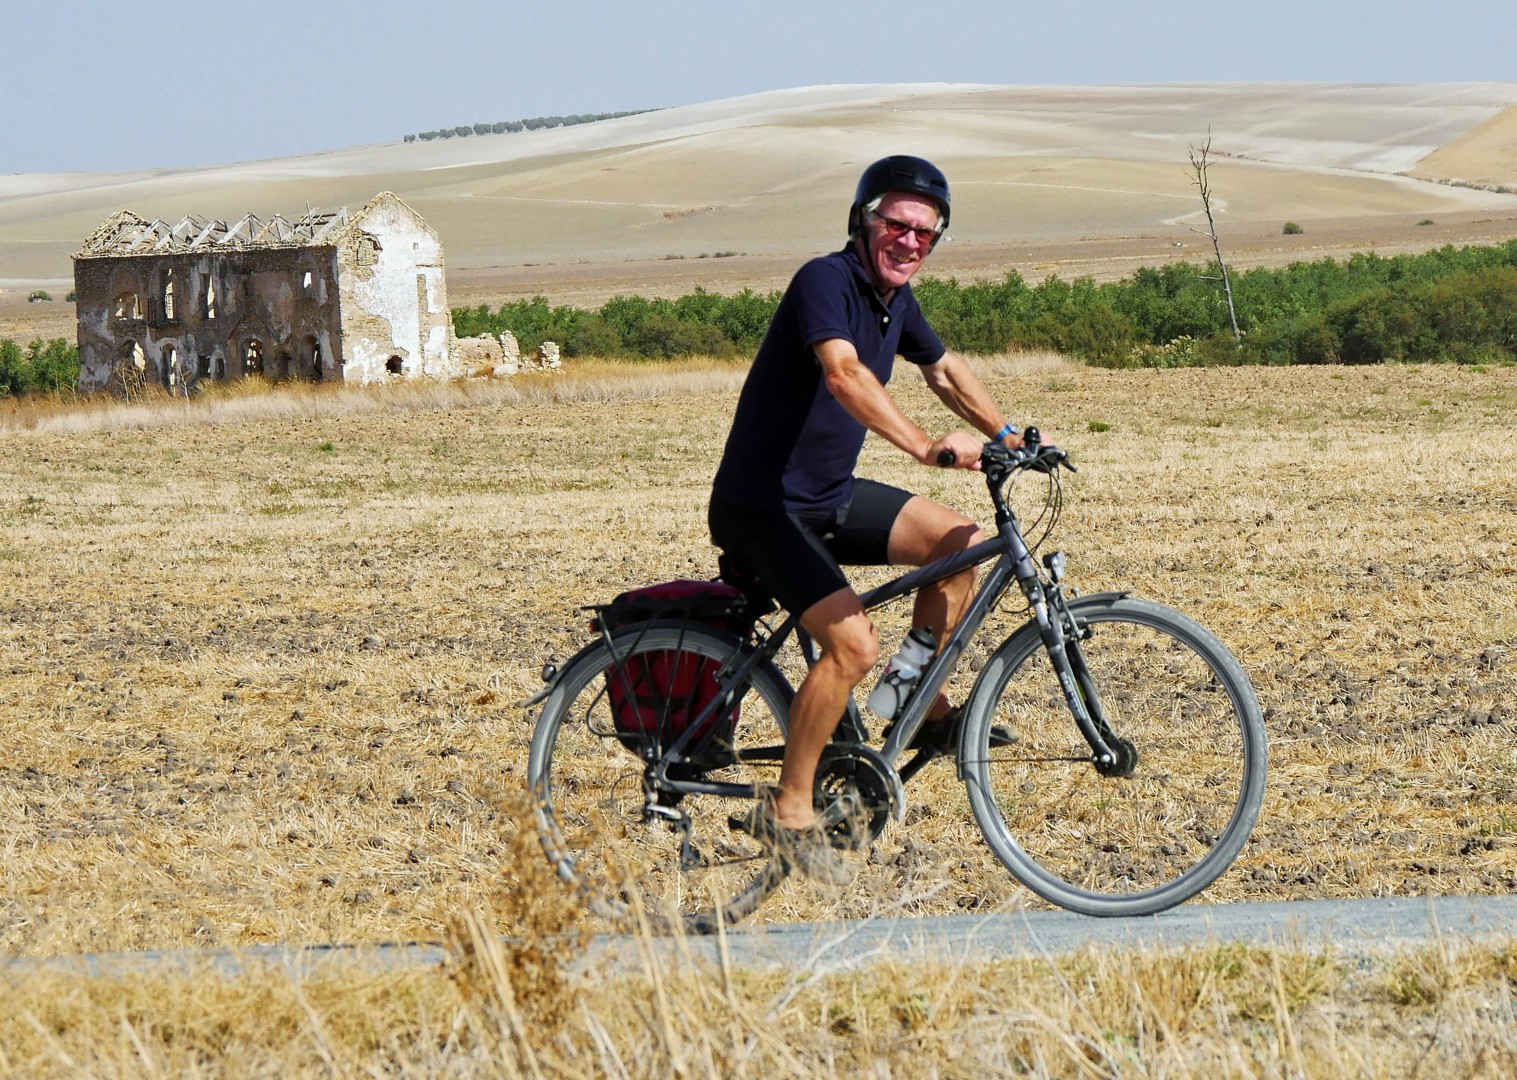 granada-self-guided-leisure-cycling-holiday .jpg - Southern Spain - Granada to Seville - Self-Guided Leisure Cycling Holiday - Leisure Cycling